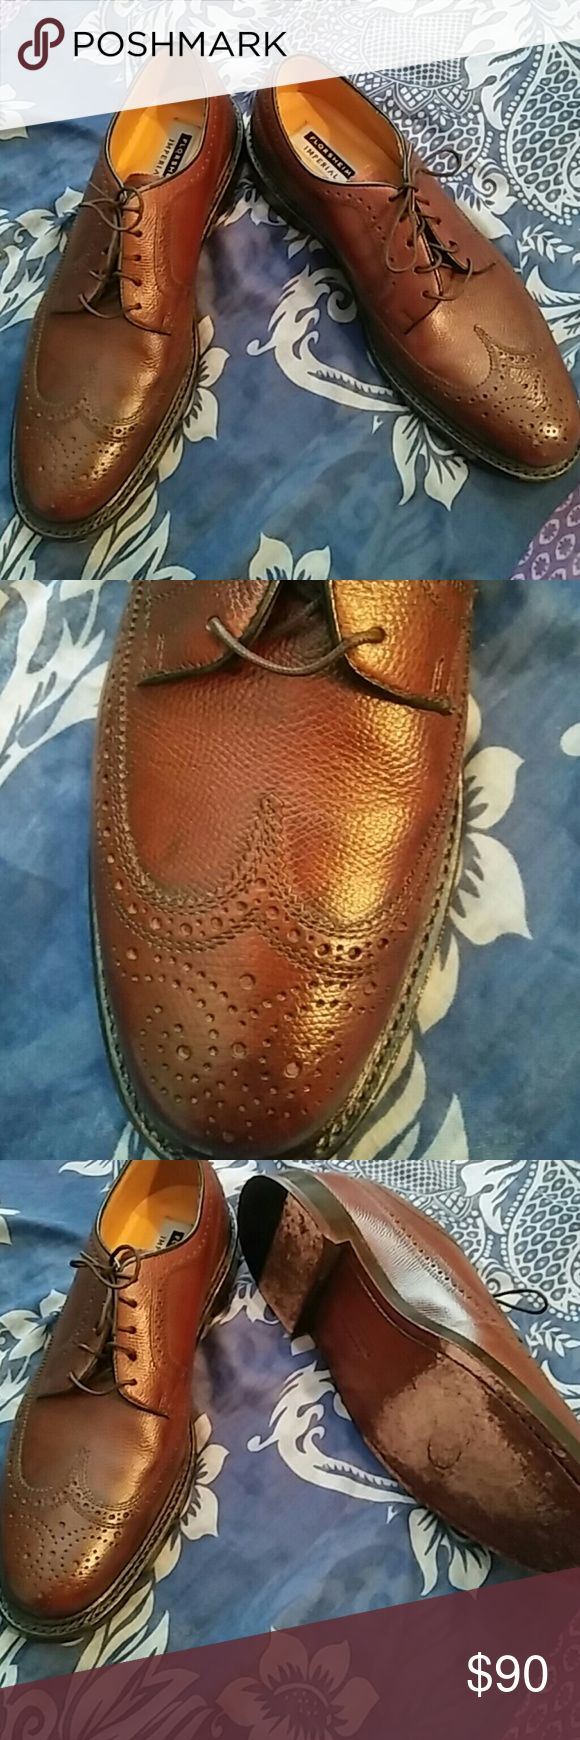 Florsheim Imperial,Brown wingtip Oxfords Highest of quality dress shoe Impeccable detail and quality Heavy quality leather and sole Lightly worn sole Sole is leather Interior is clean Has stamp of authenticity inside Retails over $320.00 new Florsheim Shoes Oxfords & Derbys